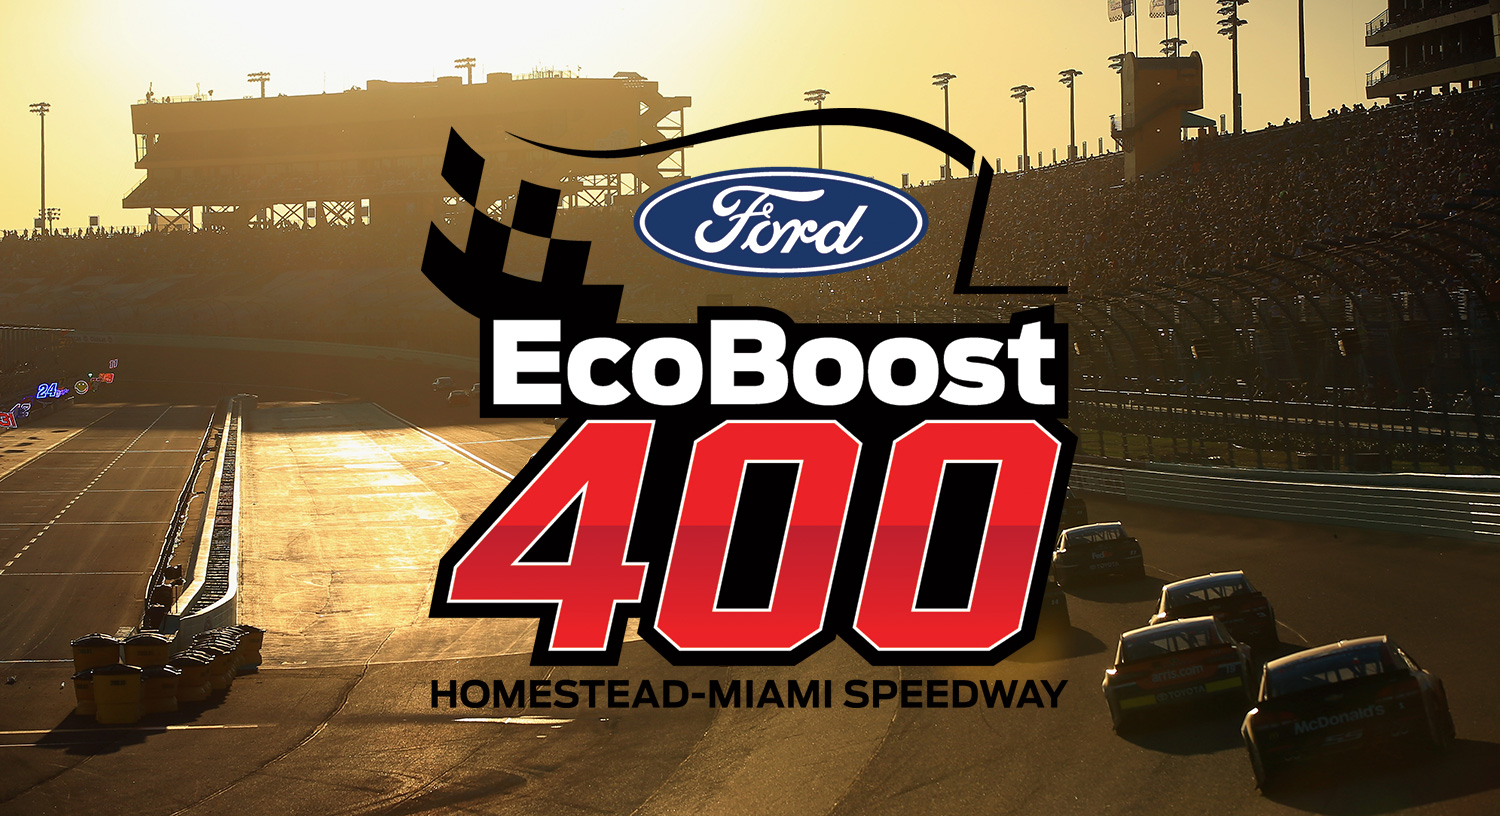 Ford-ecoboost-400-race-center